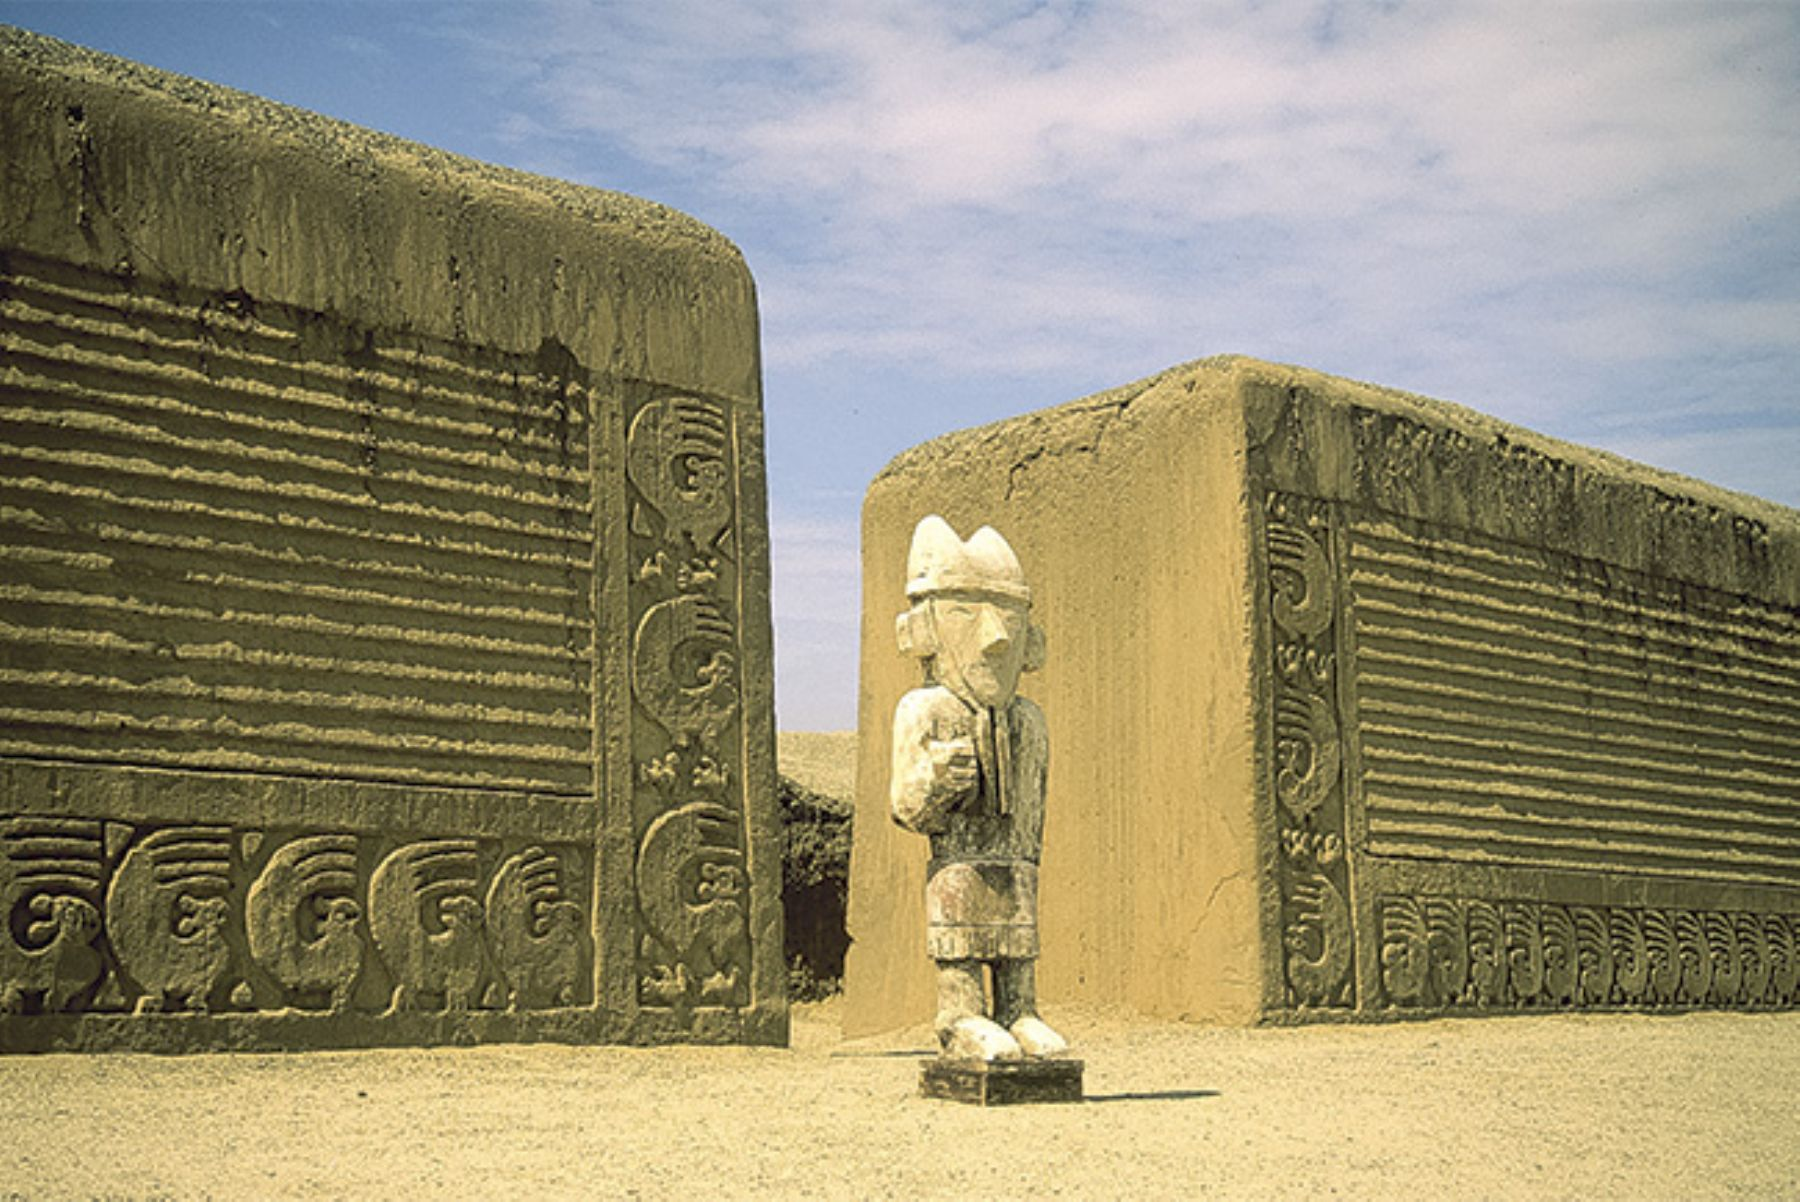 Chan Chan ruins, the largest city of pre-Hispanic America.